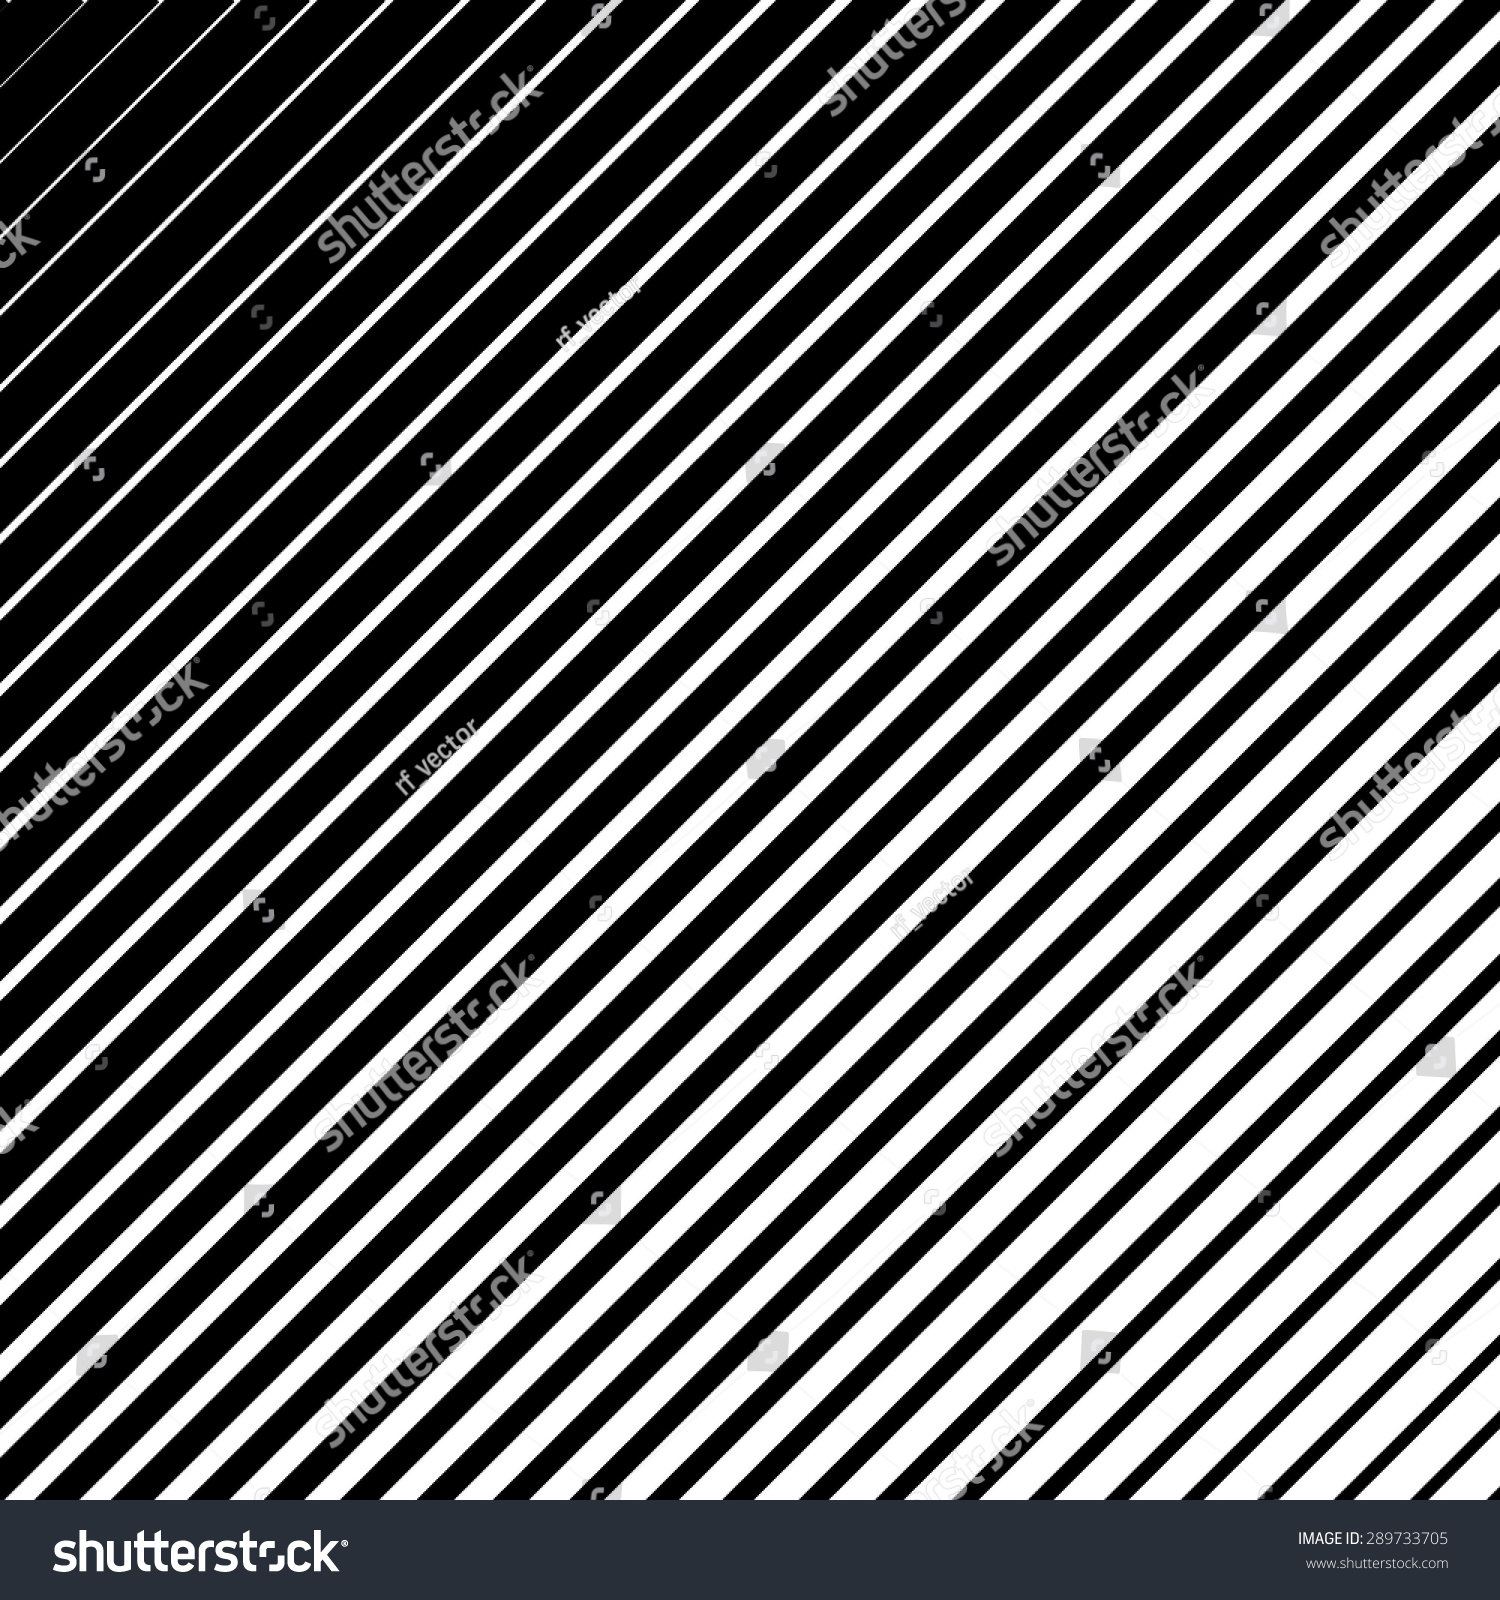 Line Texture Background : Thick diagonal line pattern